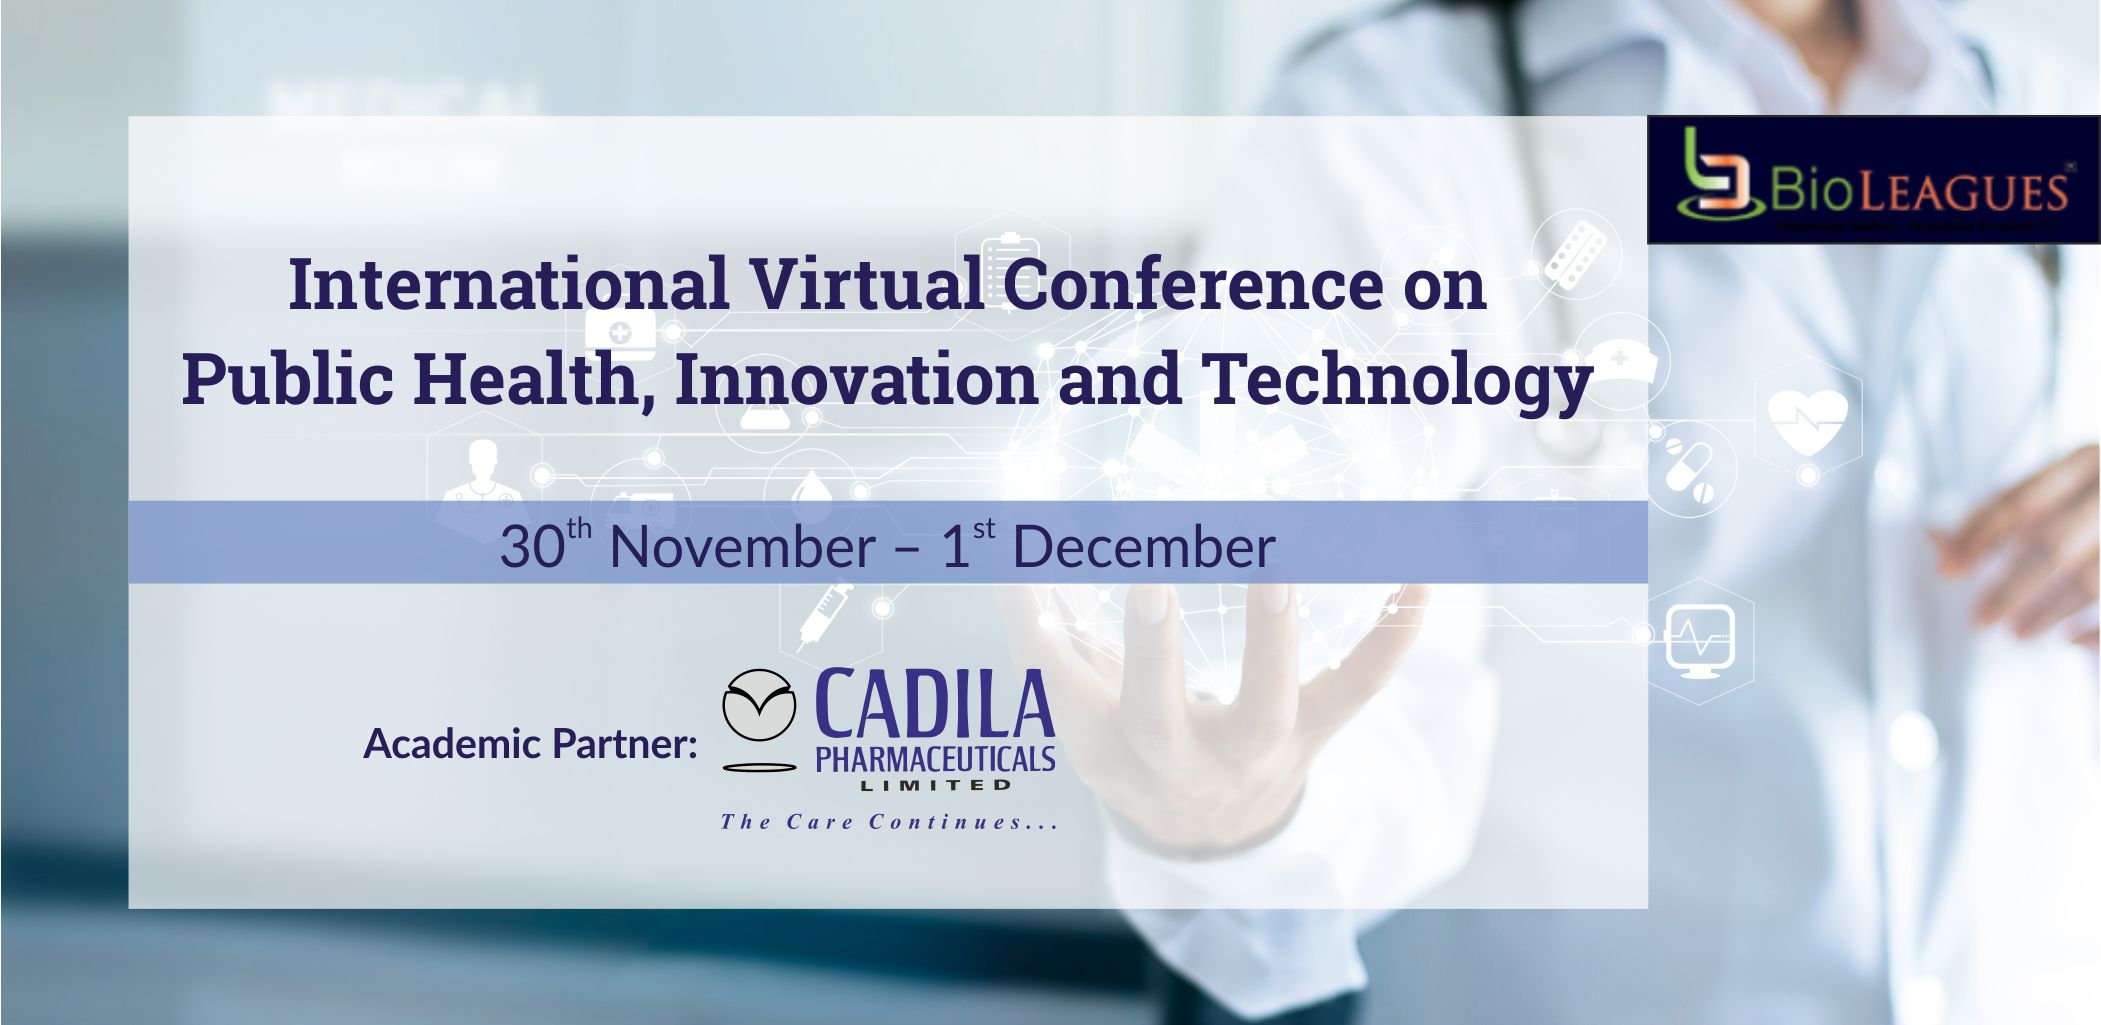 International Virtual Conference on Public Health, Innovation and Technology - 2020